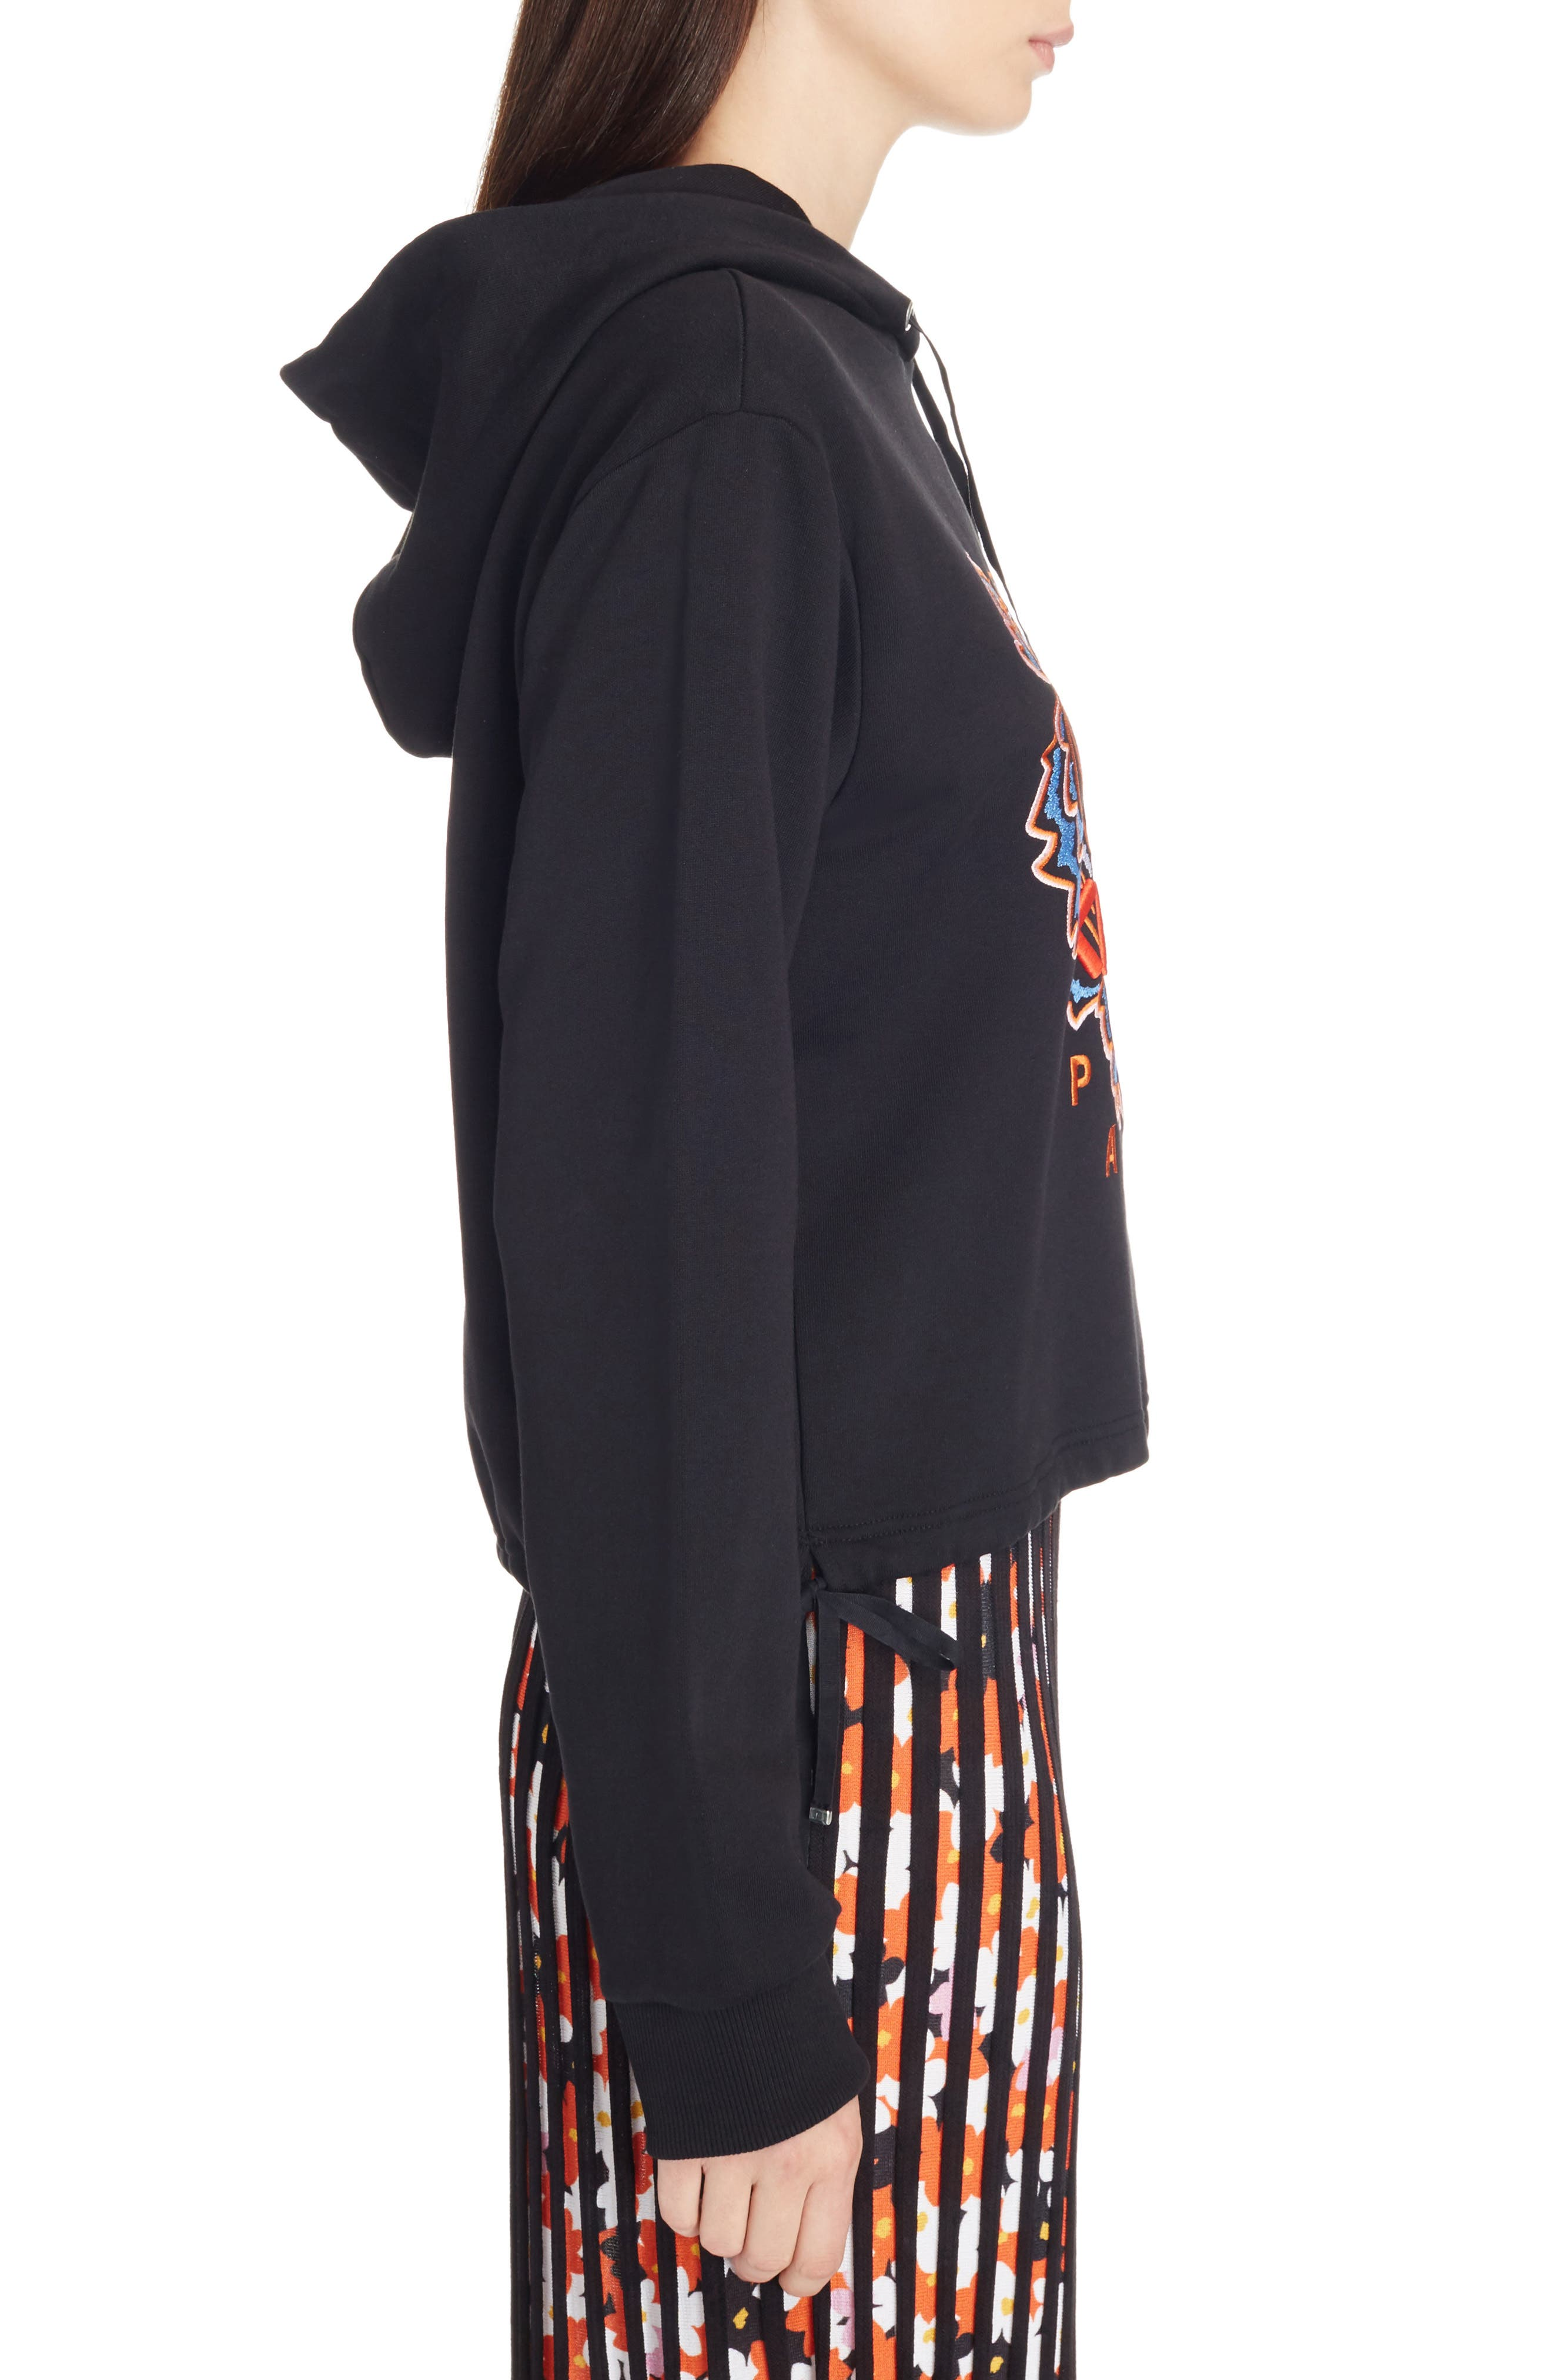 Tiger Embroidered Hoodie,                             Alternate thumbnail 4, color,                             Black